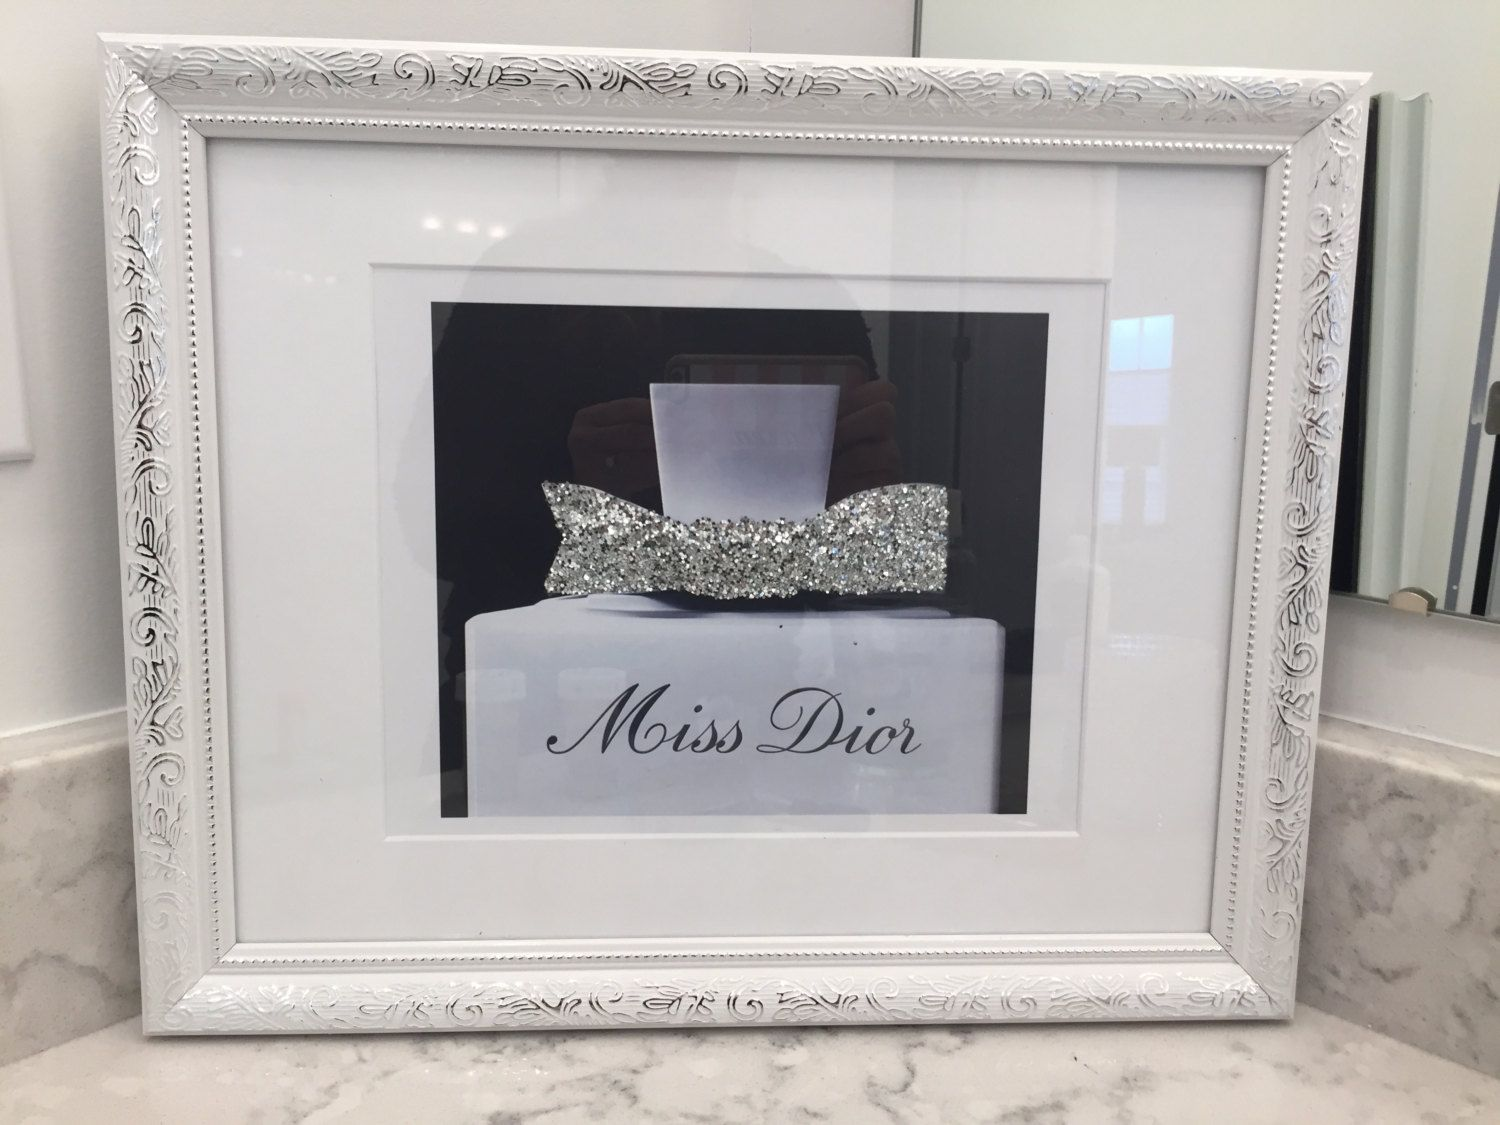 Glitter wall decor image collections home wall decoration ideas large miss dior black and white ornate framed silver glitter wall large miss dior black and amipublicfo Images